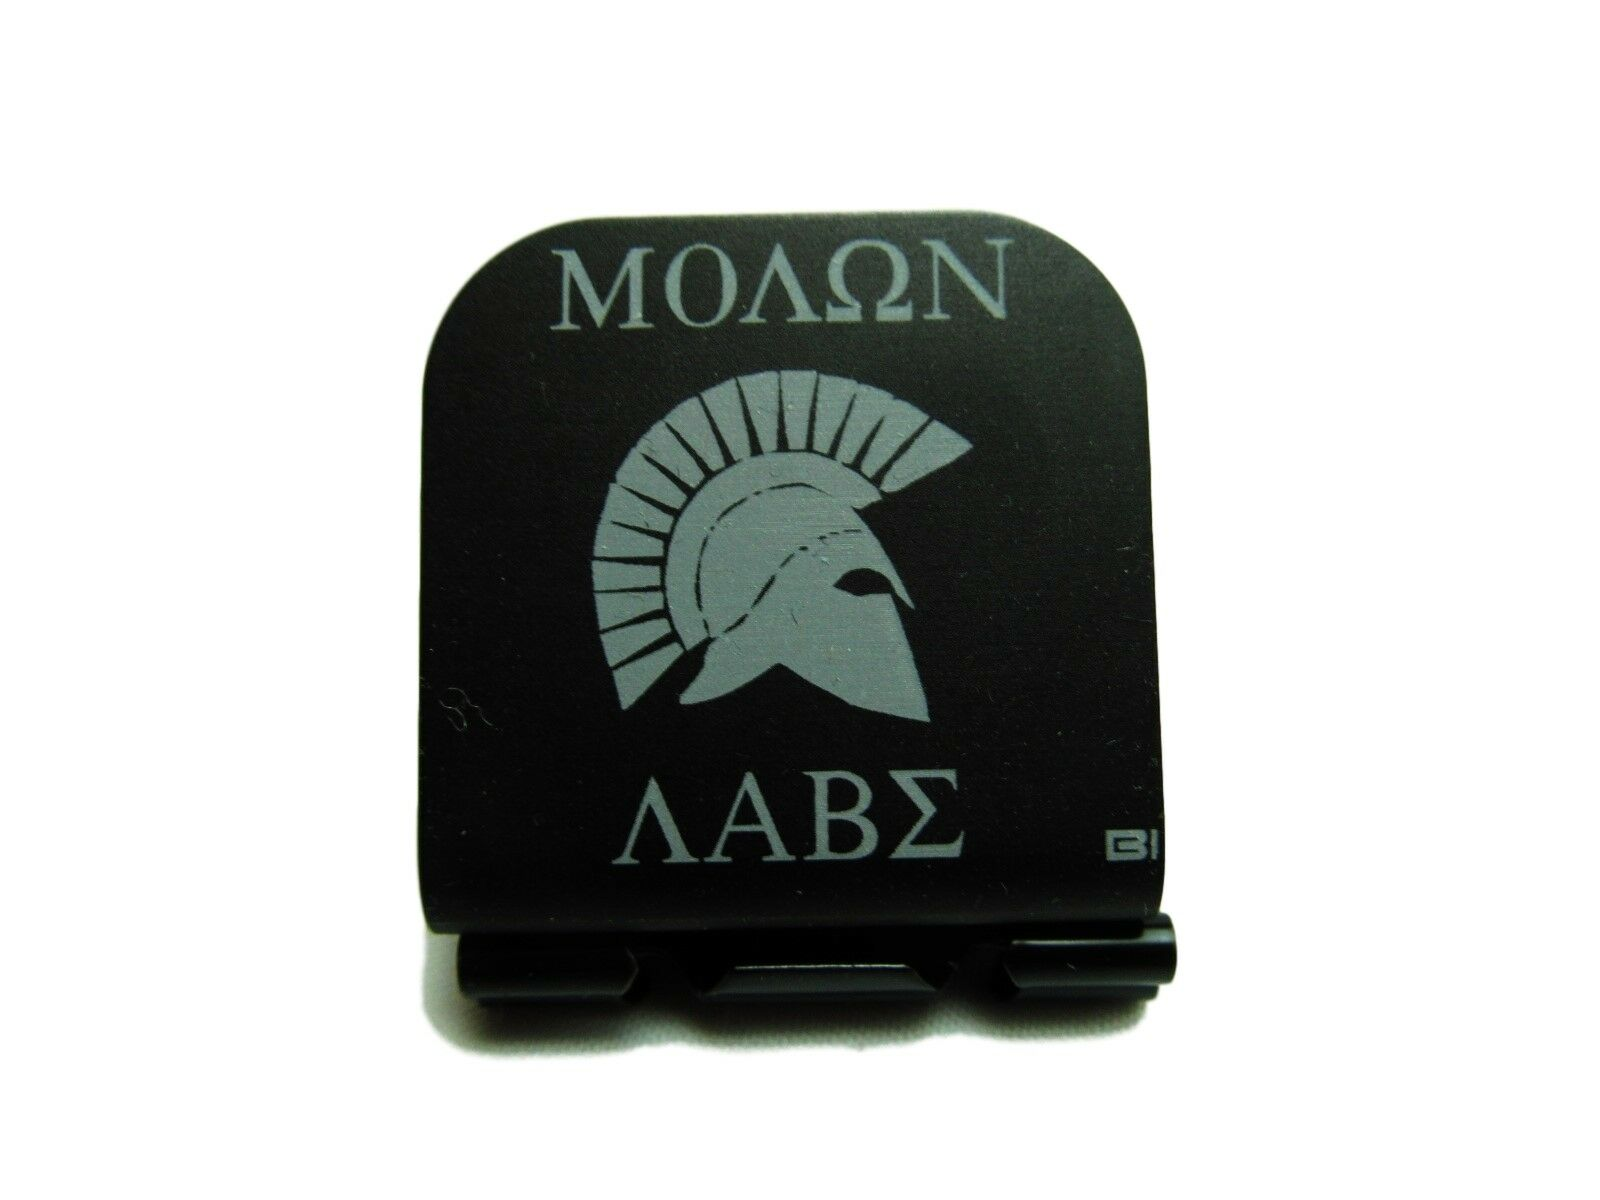 Molan Labe With With With Spartan Helmet Side Laser Etched Aluminum Hat Clip Brim-it 204d8c